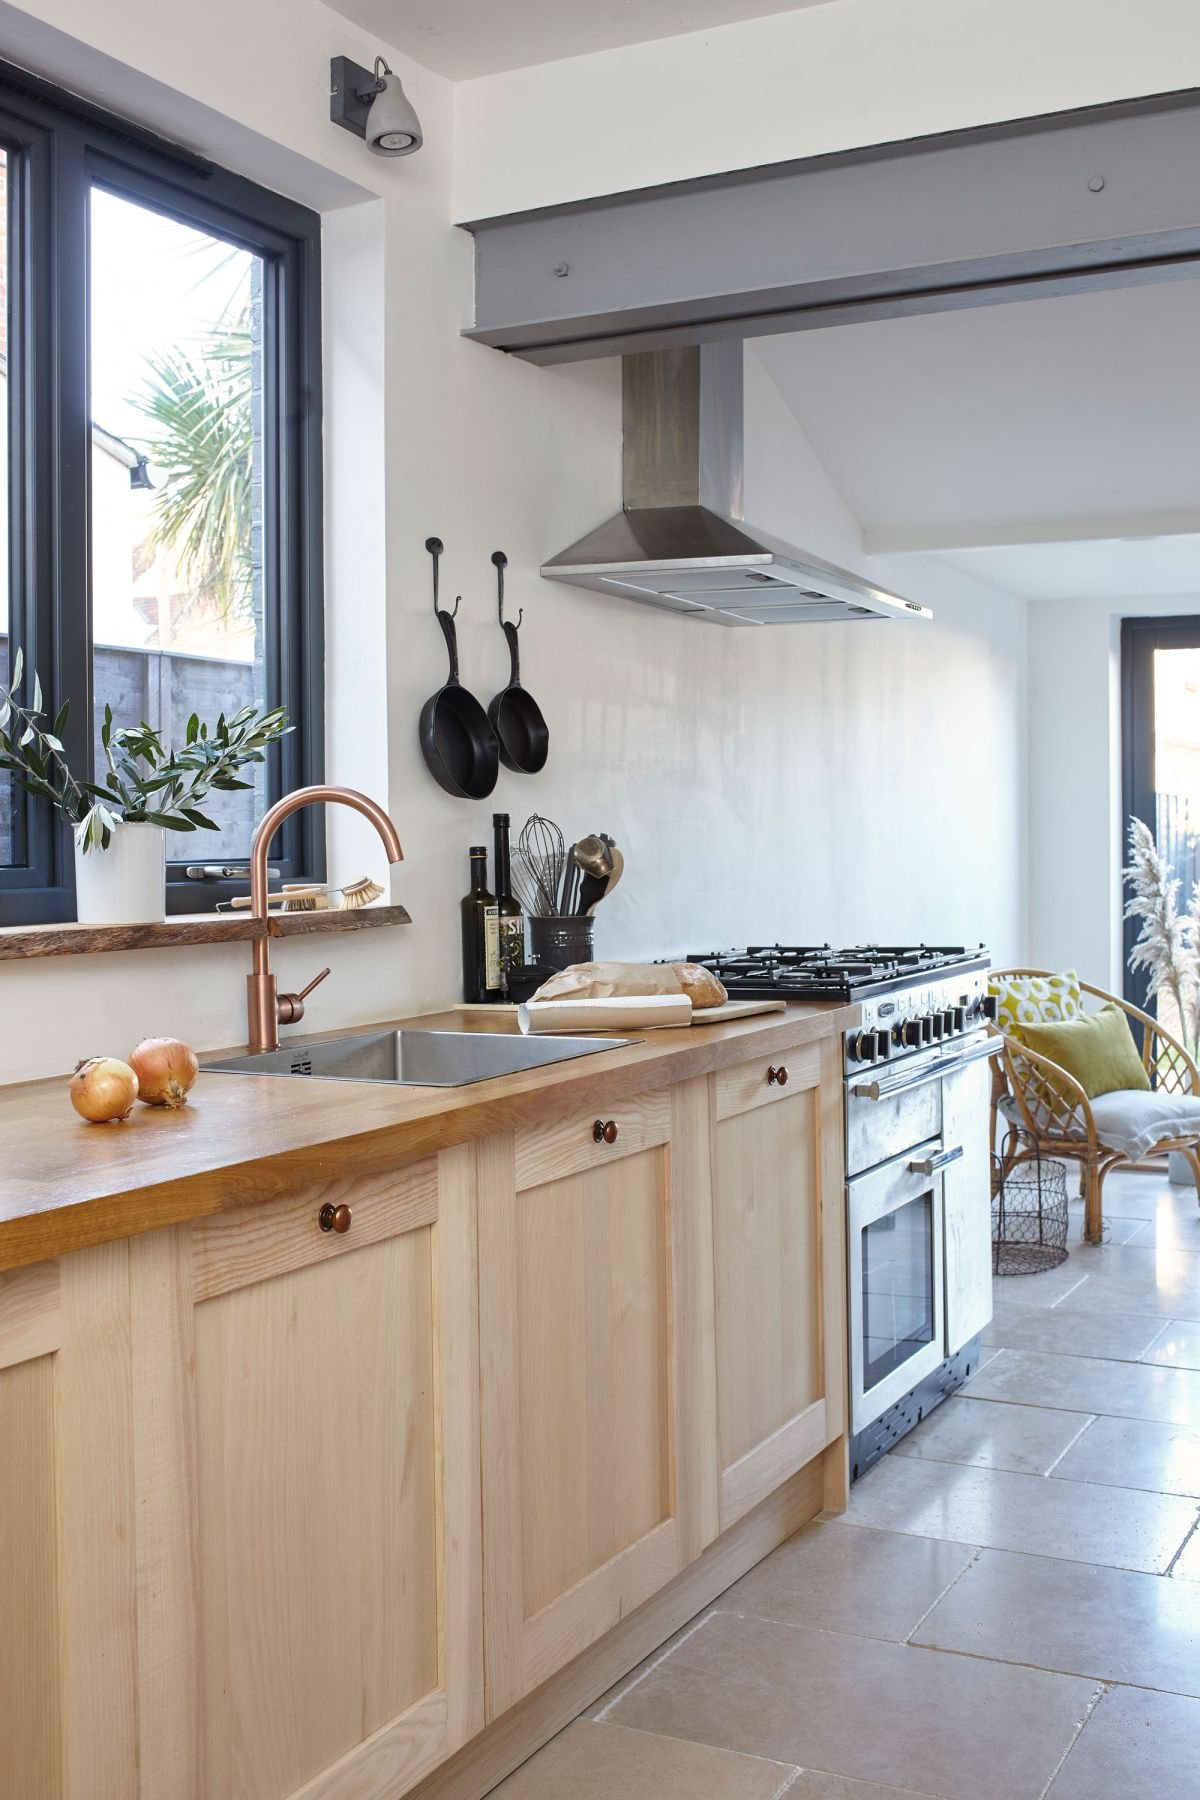 Island home is a dream renovation for couple. Take a look!